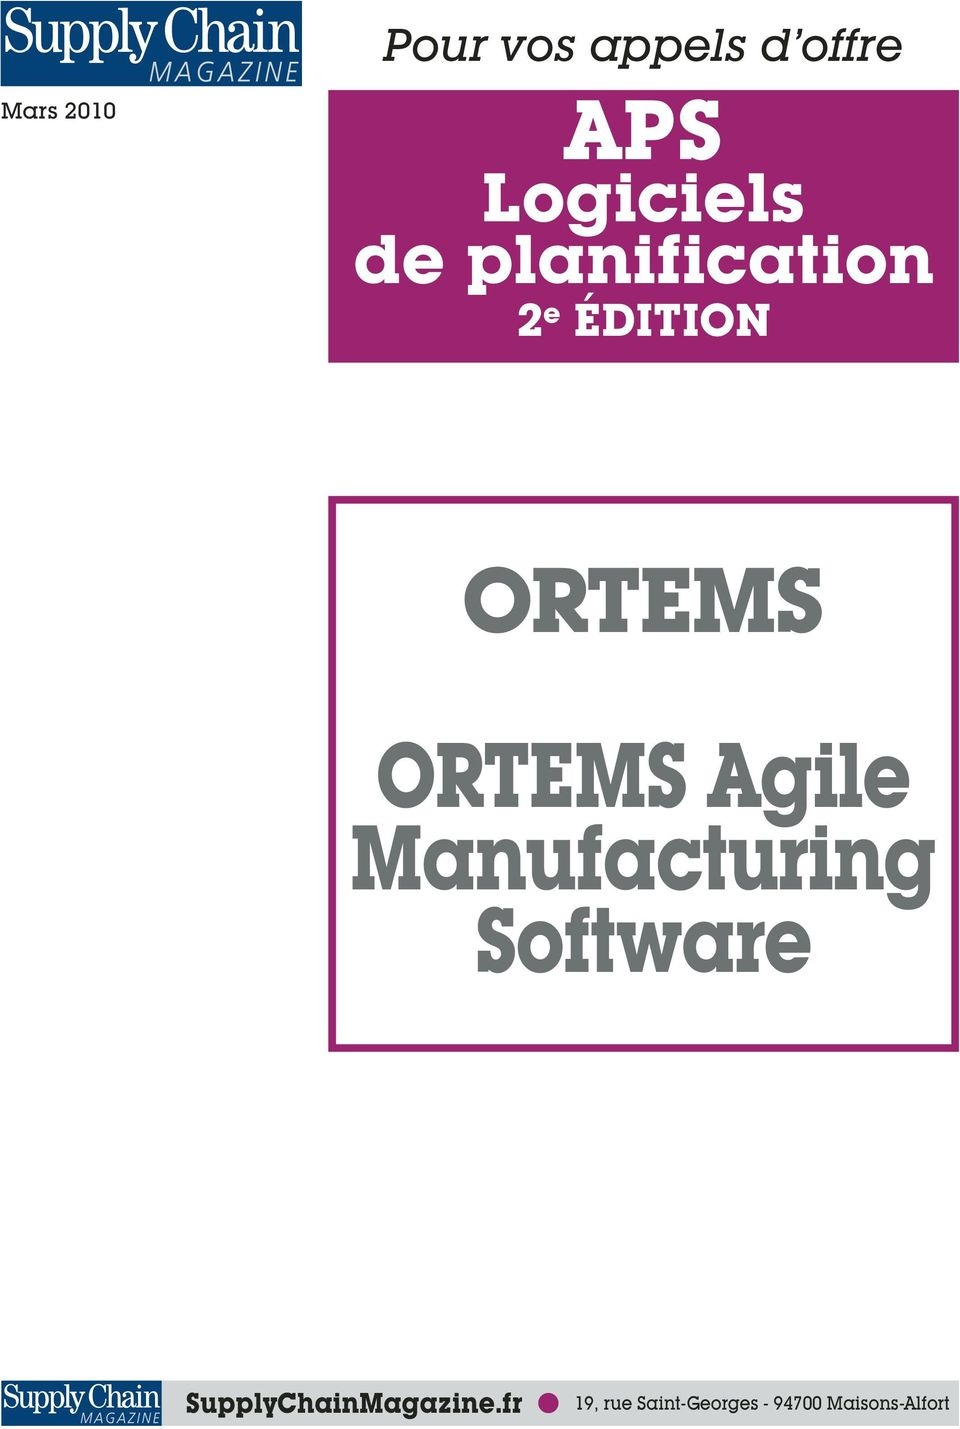 RTEMS Agile Manufacturing Software